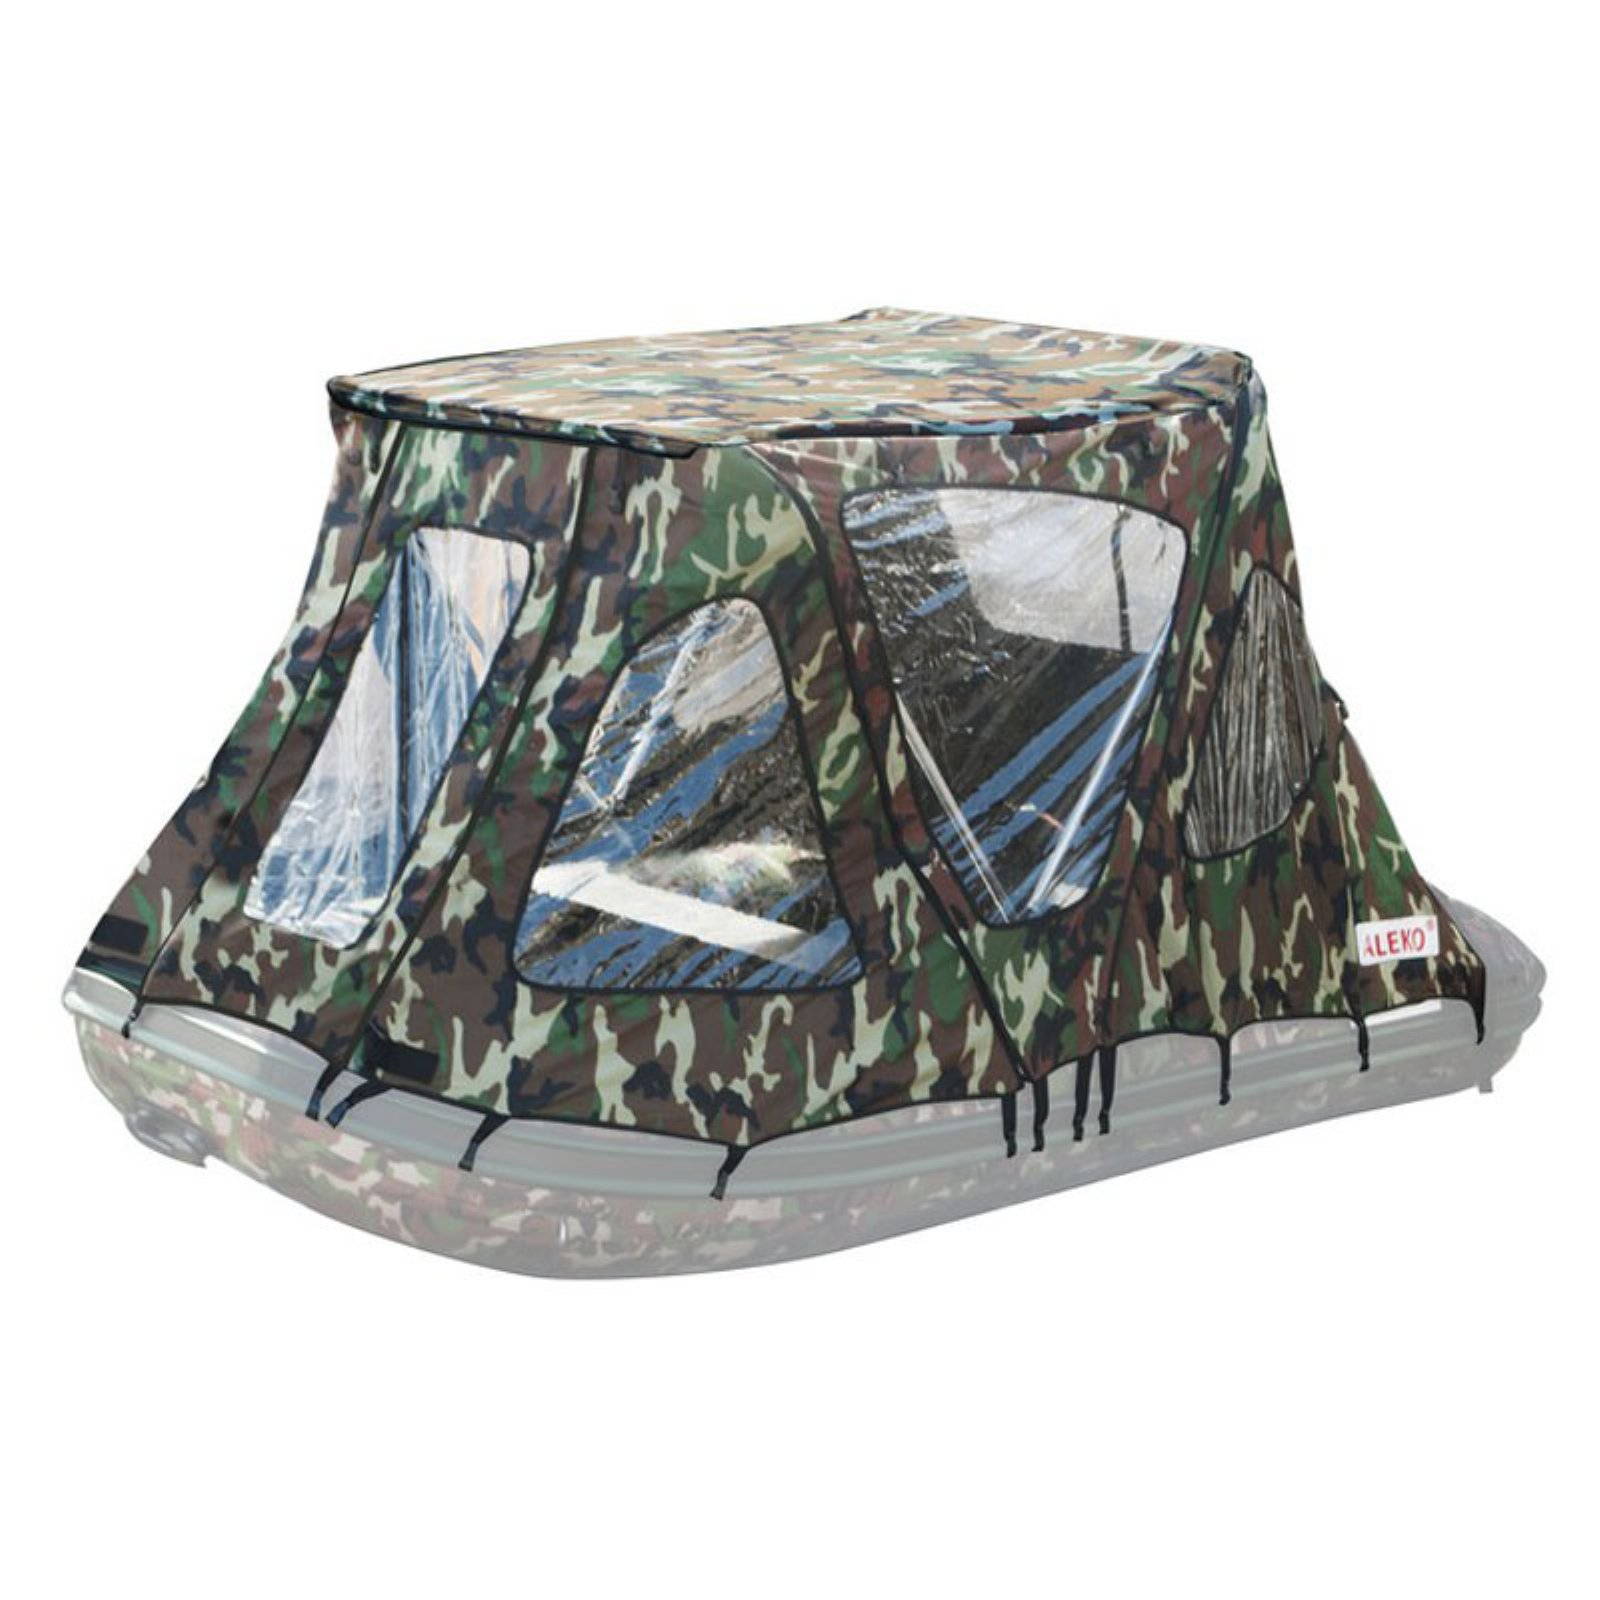 ALEKO BWTENT380CM Winter Canopy Boat Tent for Inflatable Boats